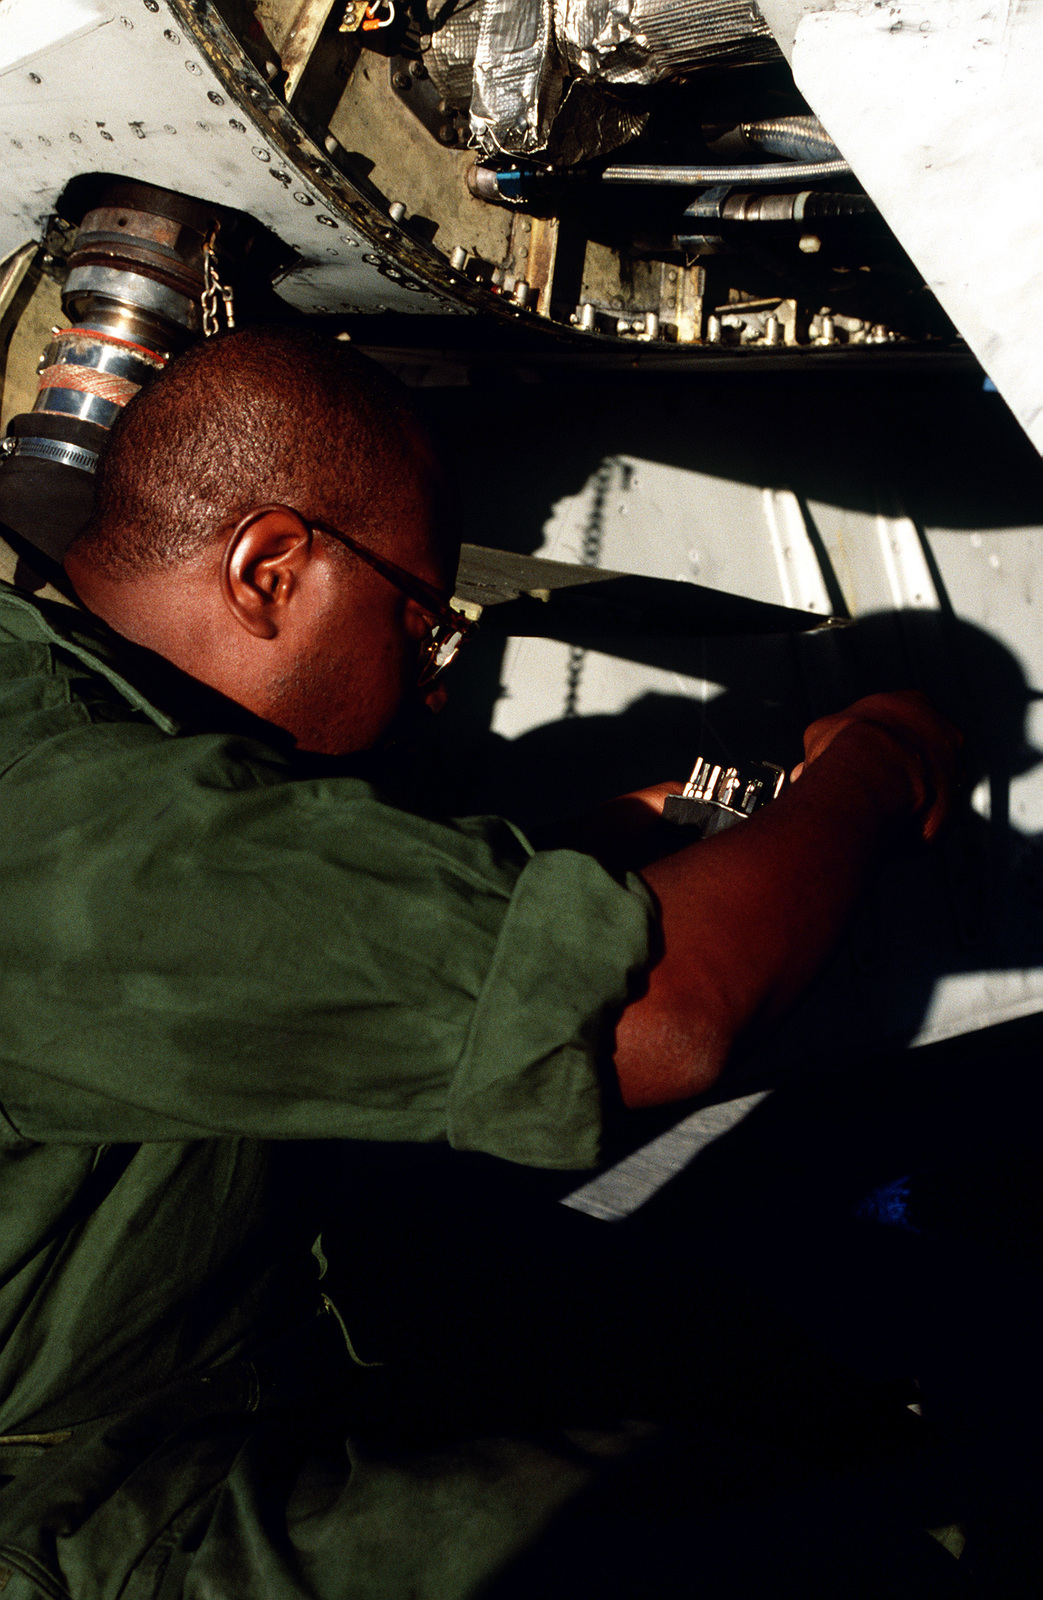 STAFF SGT. Dennard prepares to tack a panel on an EF-111A Raven aircraft on the flightline as the ground crew prepares the aircraft for a NATO airstrike against the Bosnian Serbs. STAFF SGT. Dennard, an aircraft maintenance technician from the 652nd Combat Logistics Support System, McClellan Air Force Base, Calif., is deployed to Aviano to support the 429th Electronics Combat Squadron